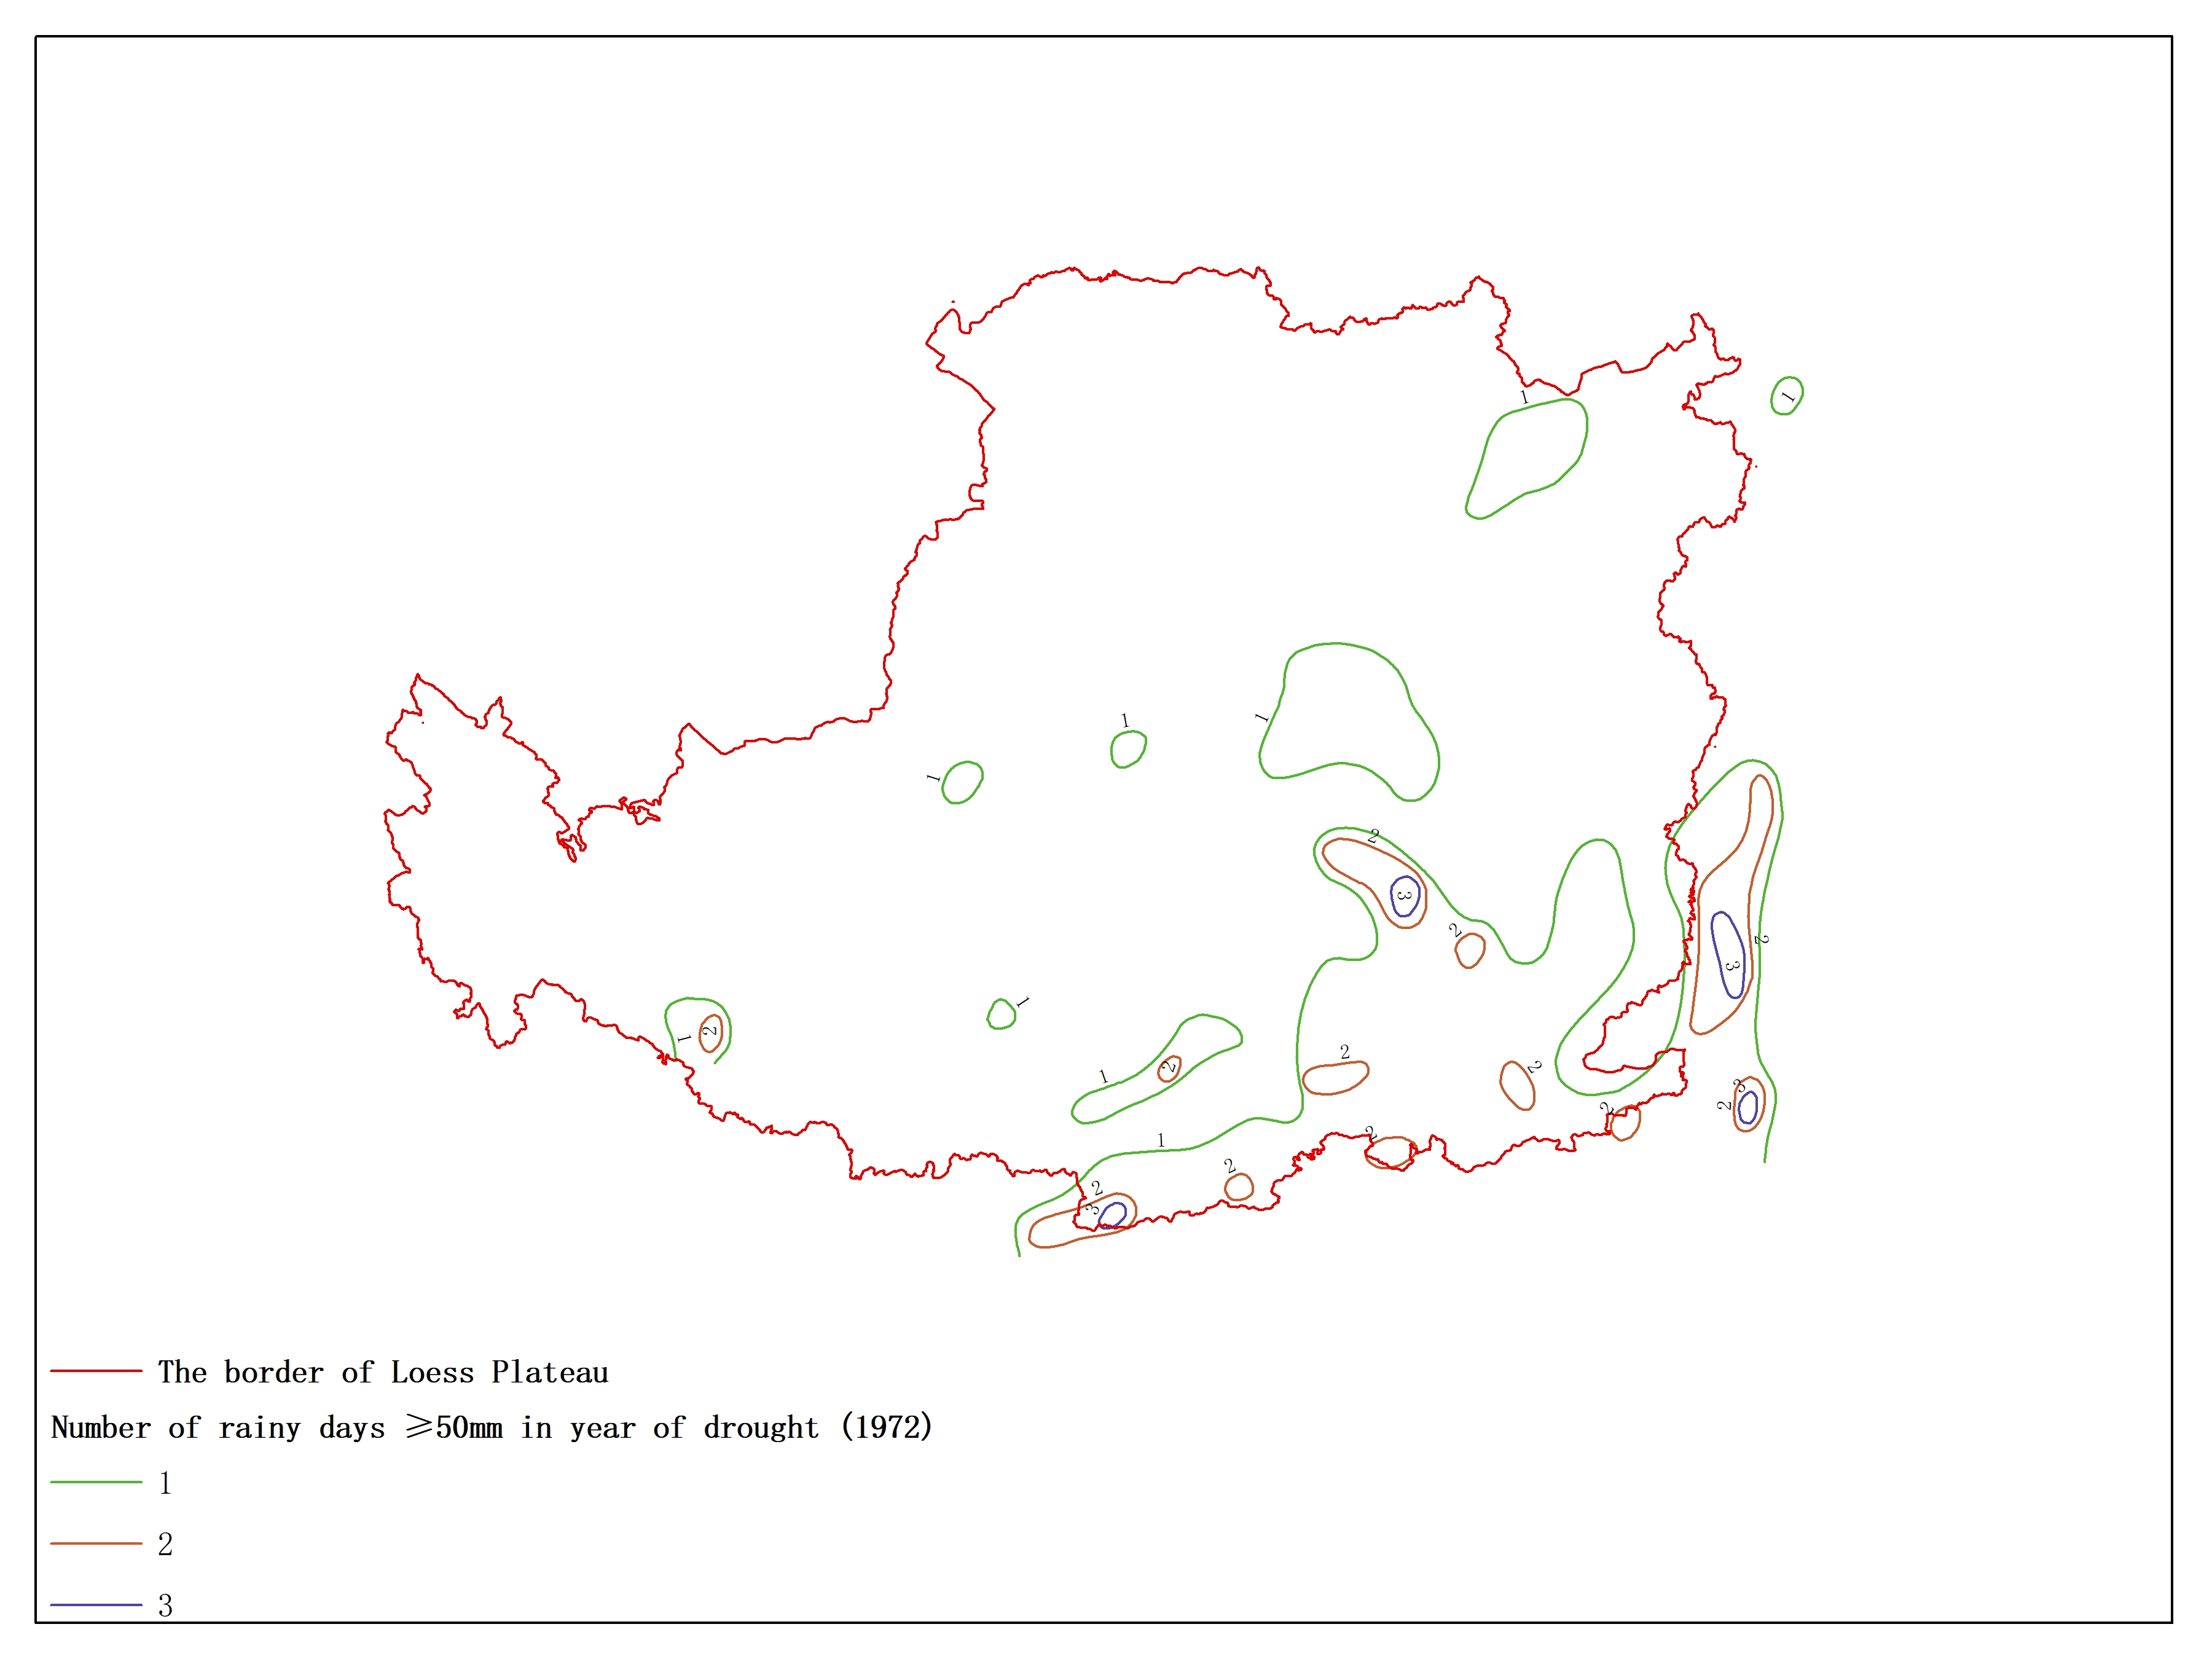 Agricultural climate resource atlas of Loess Plateau-Number of rainy days ≥50mm in year of drought (1972)